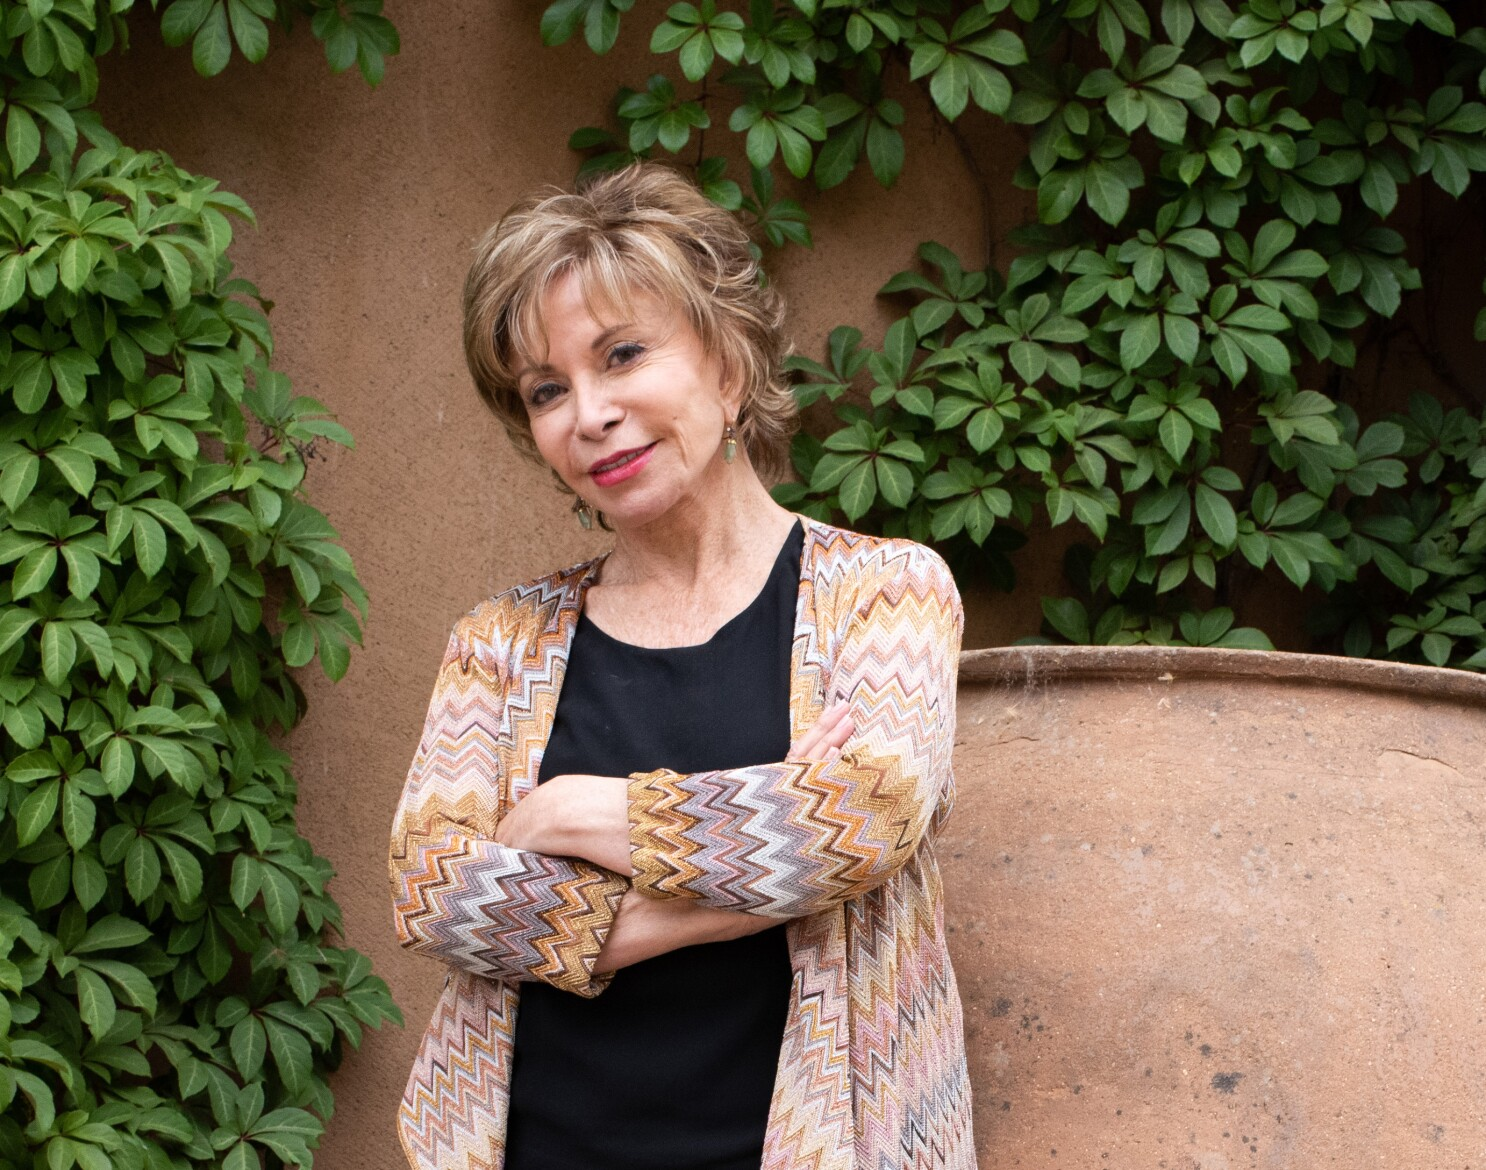 Isabel Allende weaves a tale of love and displacement in 'A Long Petal of the Sea'